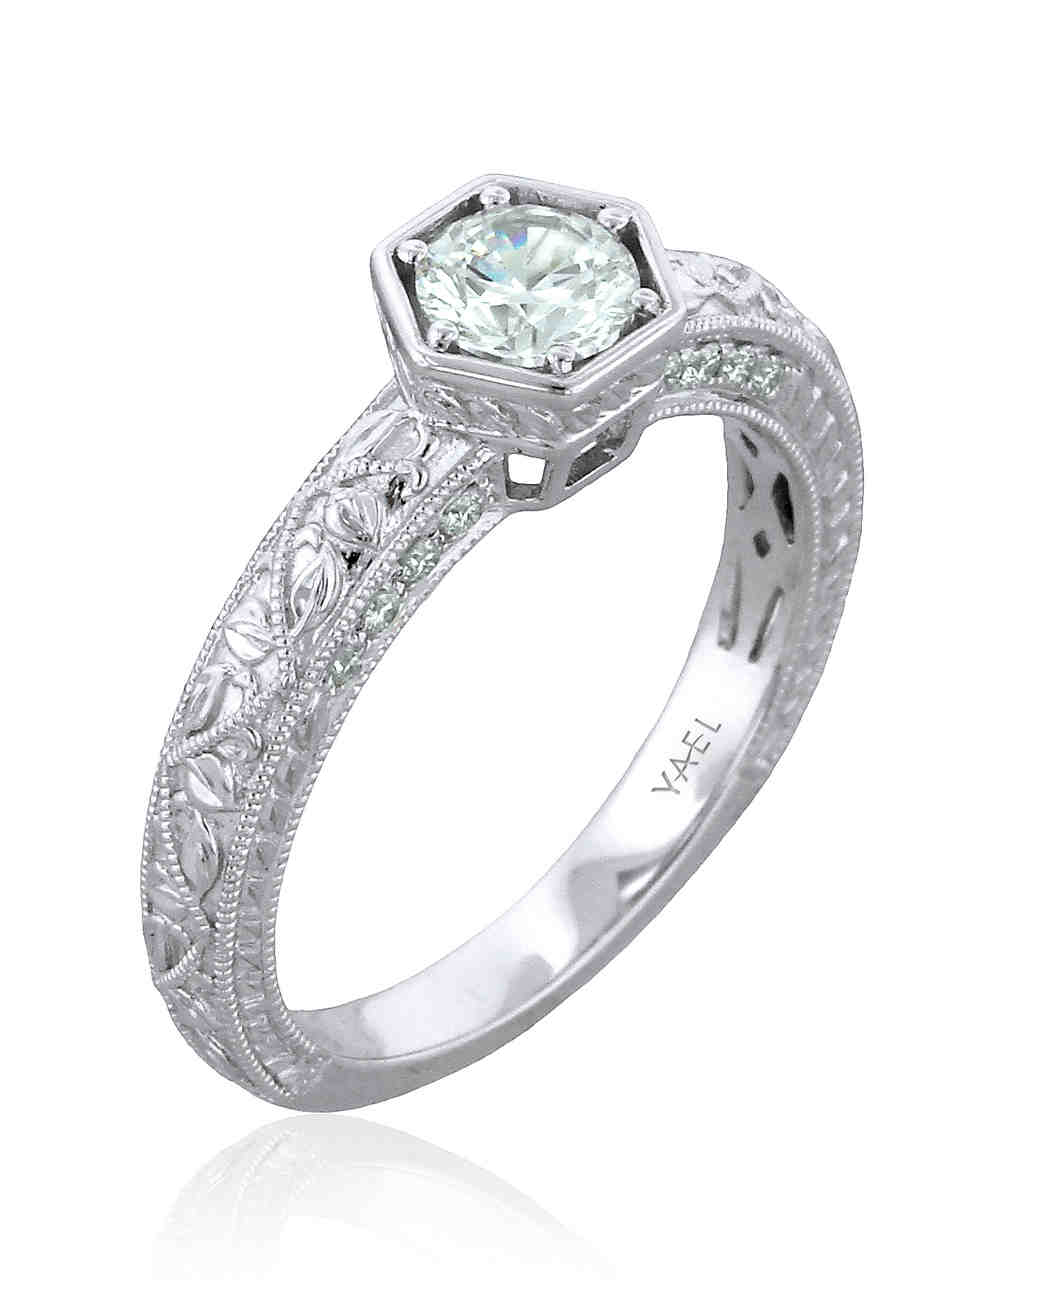 diamond fresh of top engagement attachment rated with famous ring rings designers